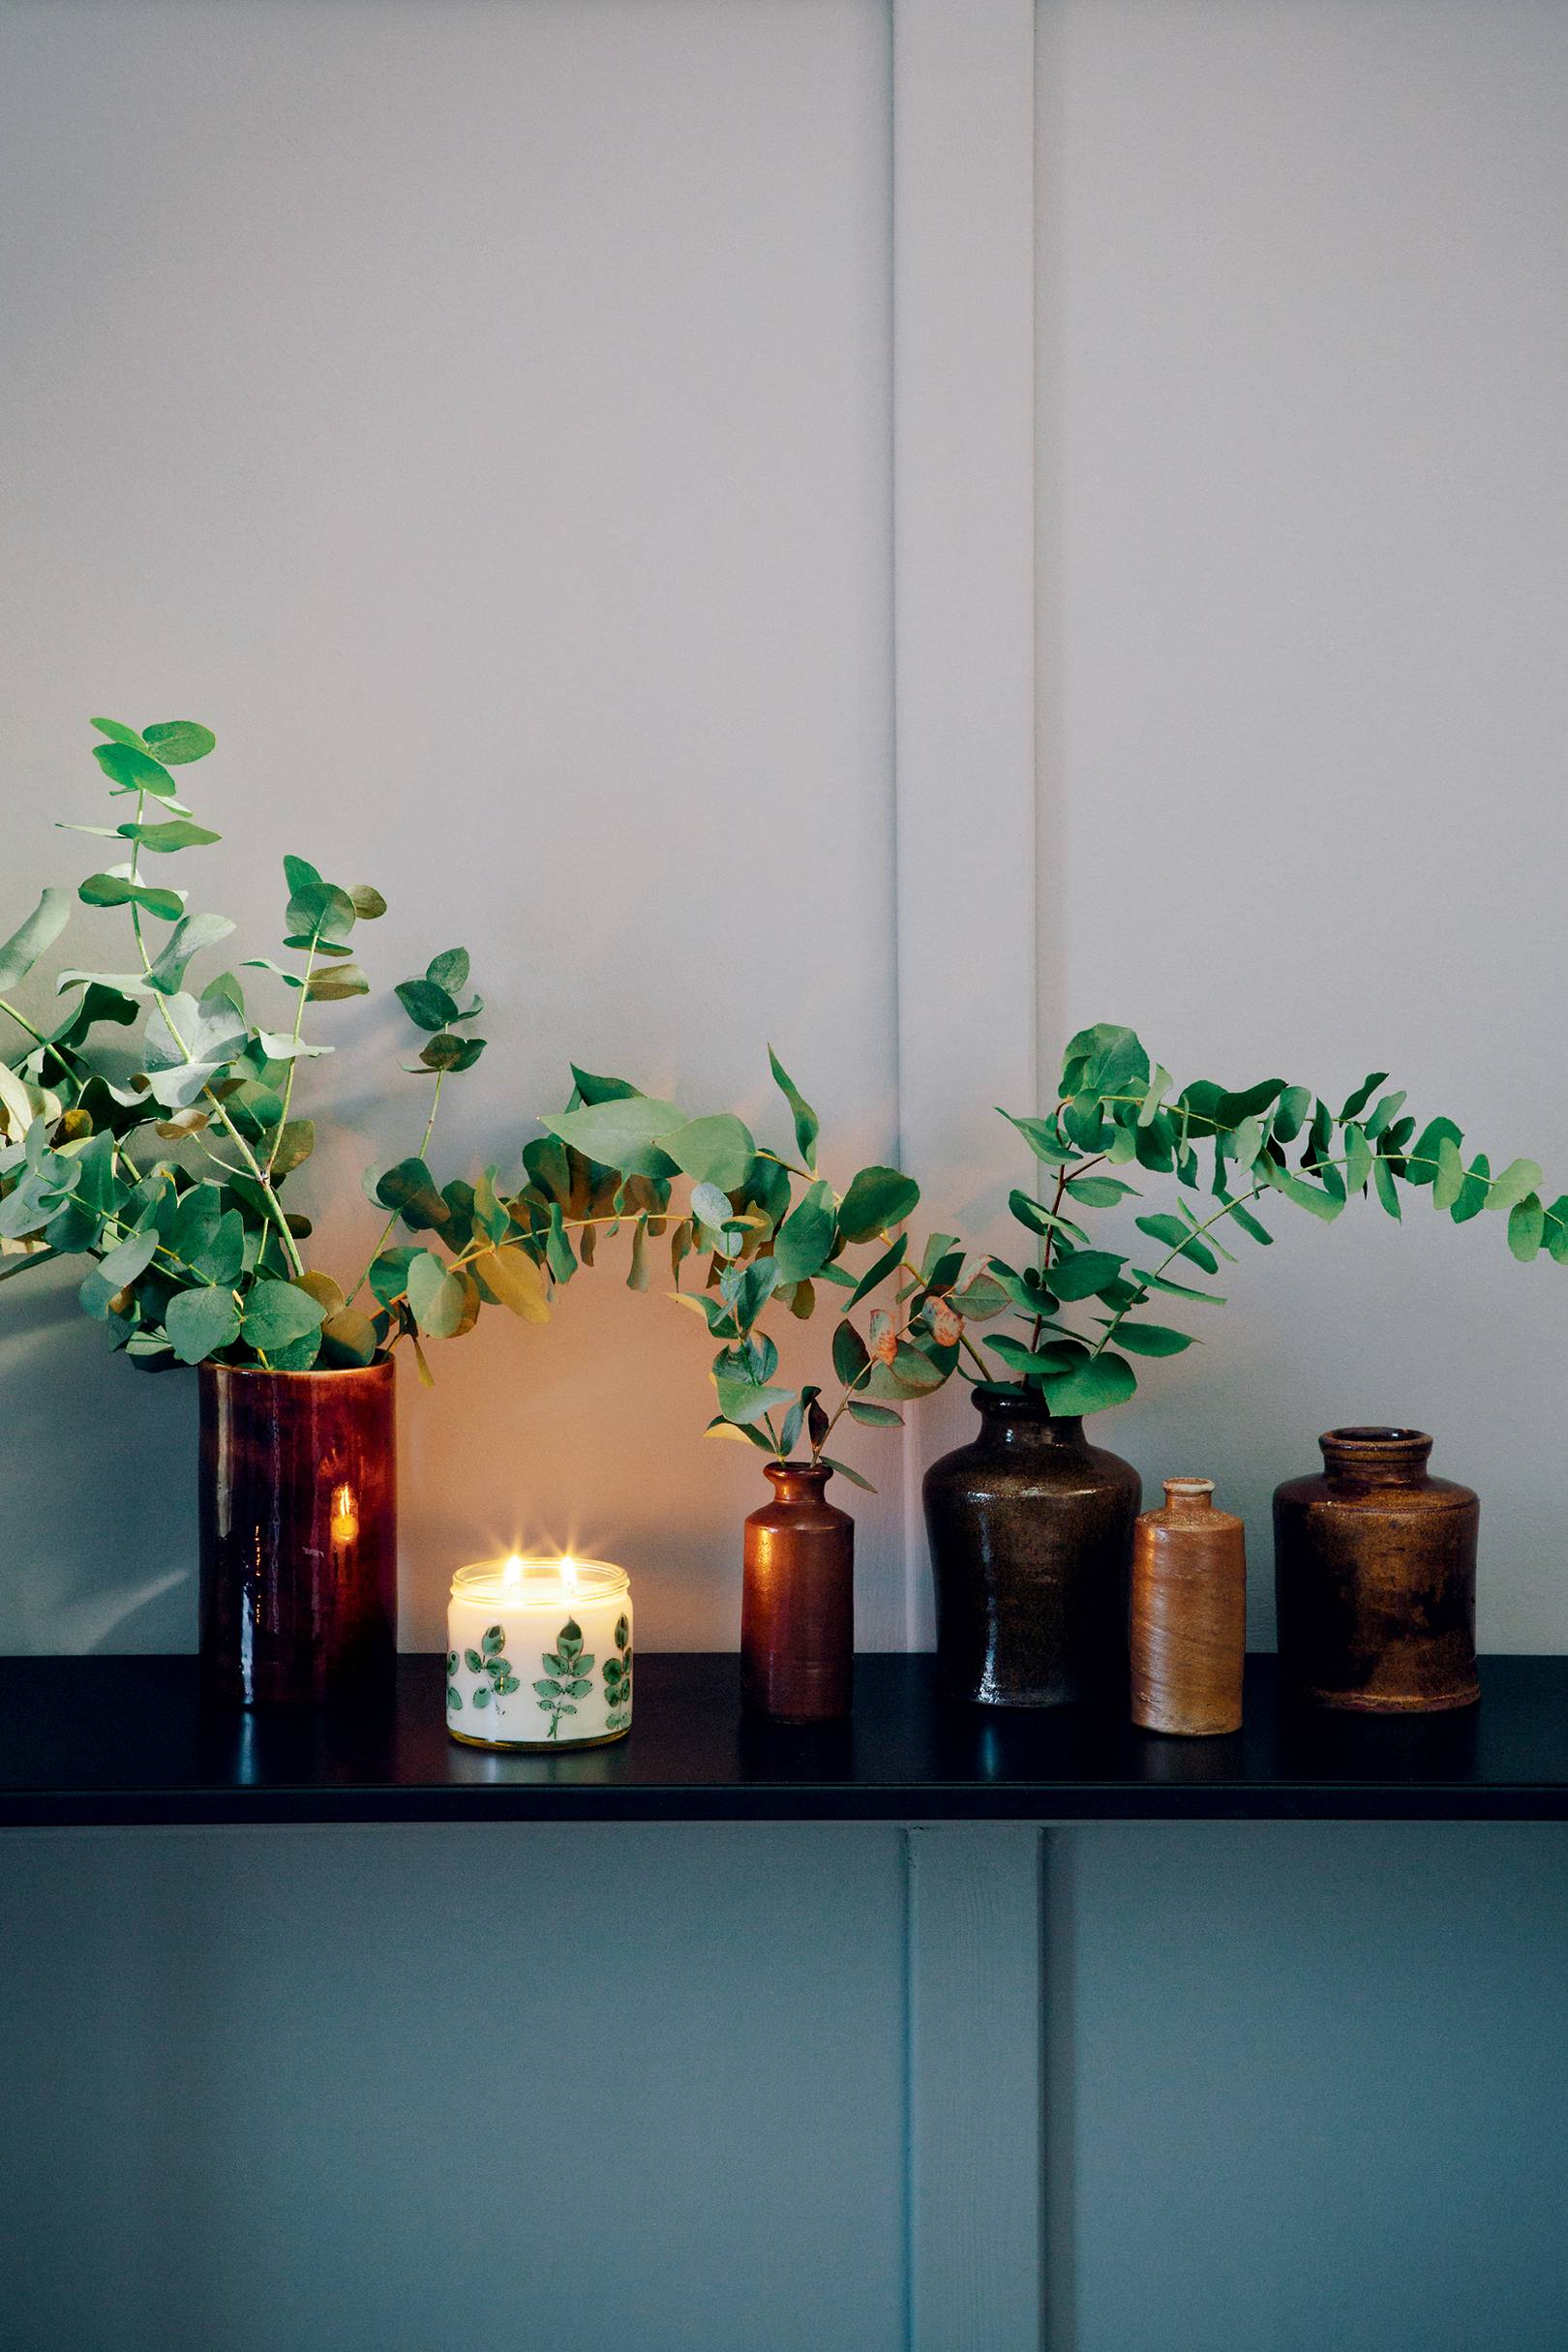 How to make scented candles: blending the fragrance